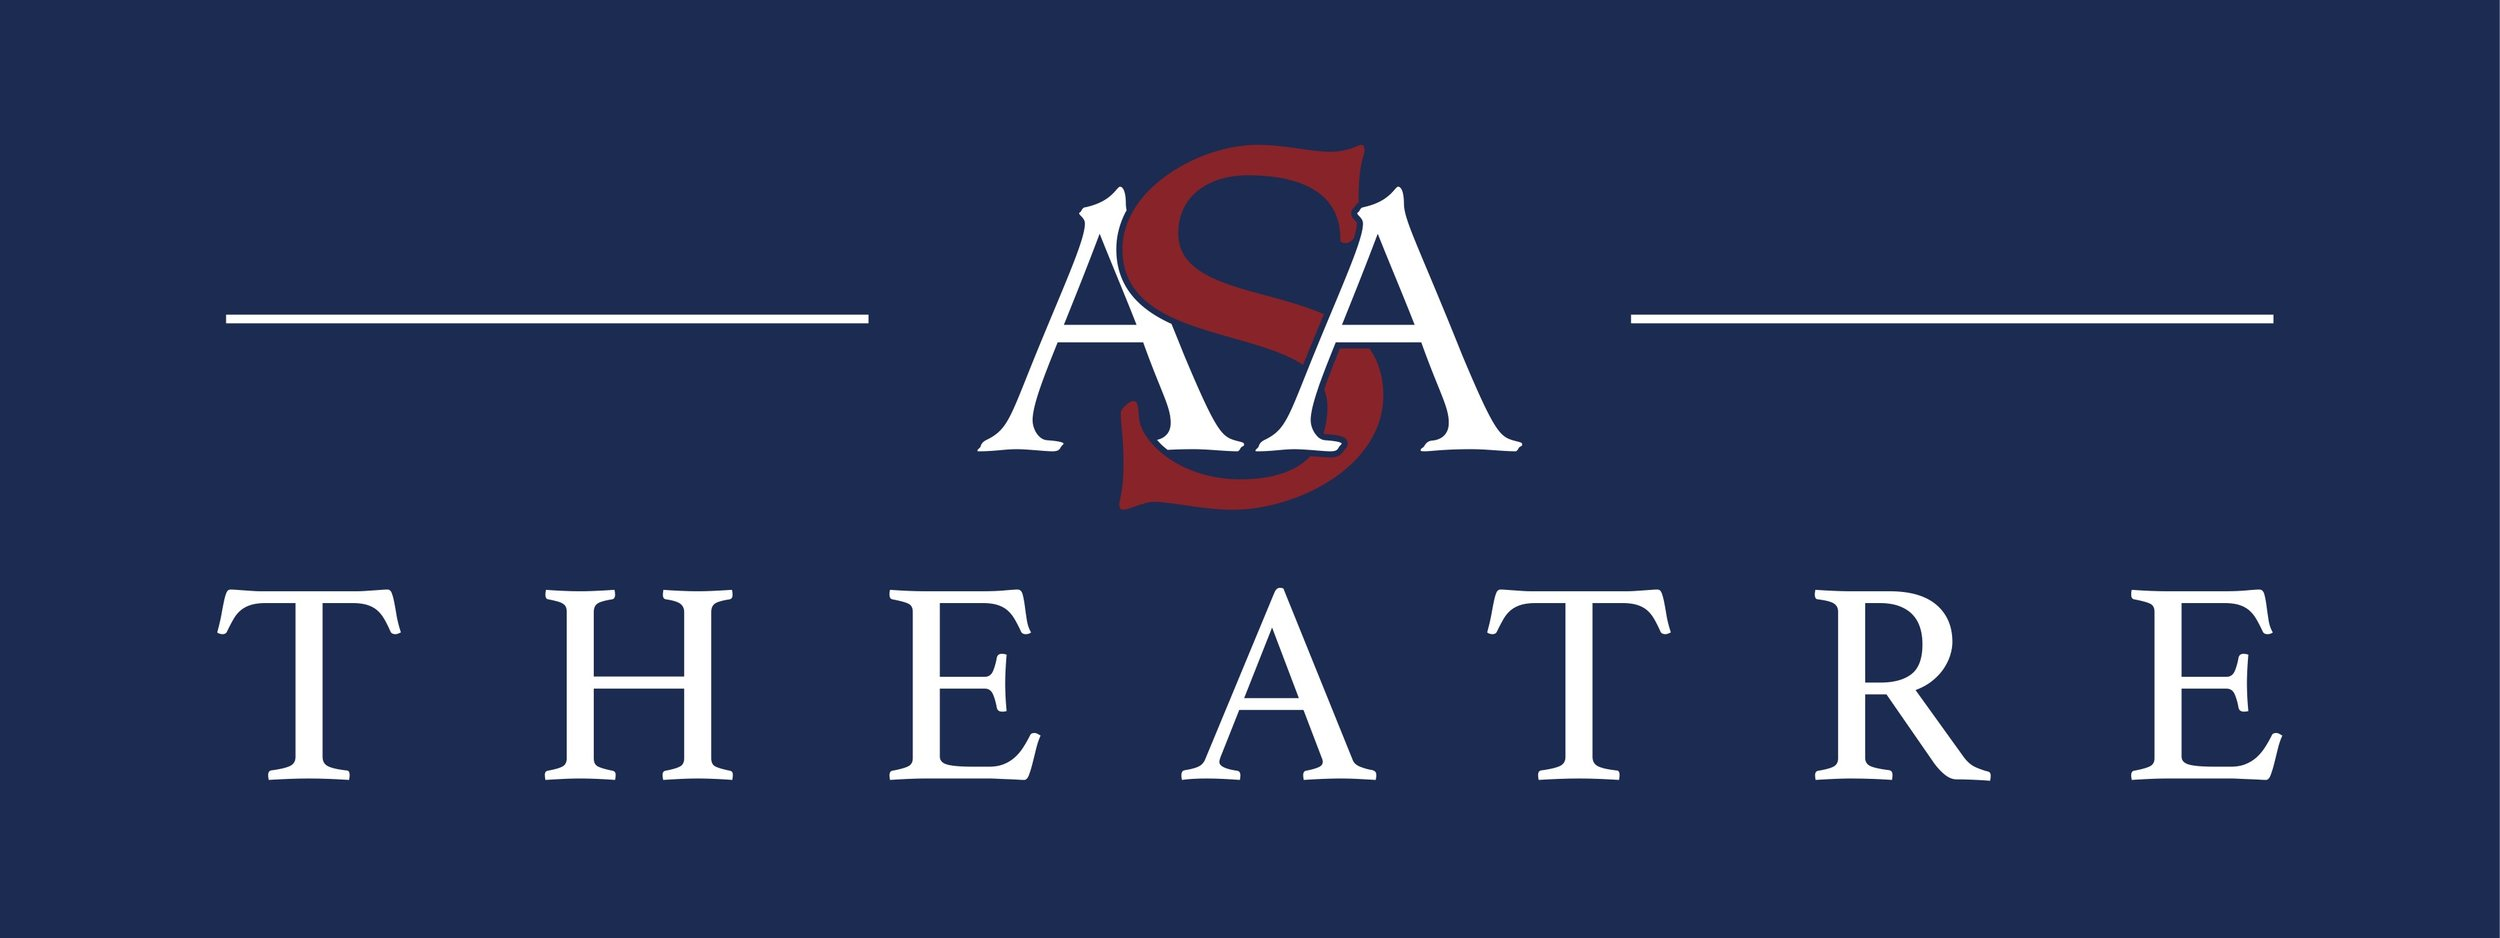 ASA theater logo.jpg